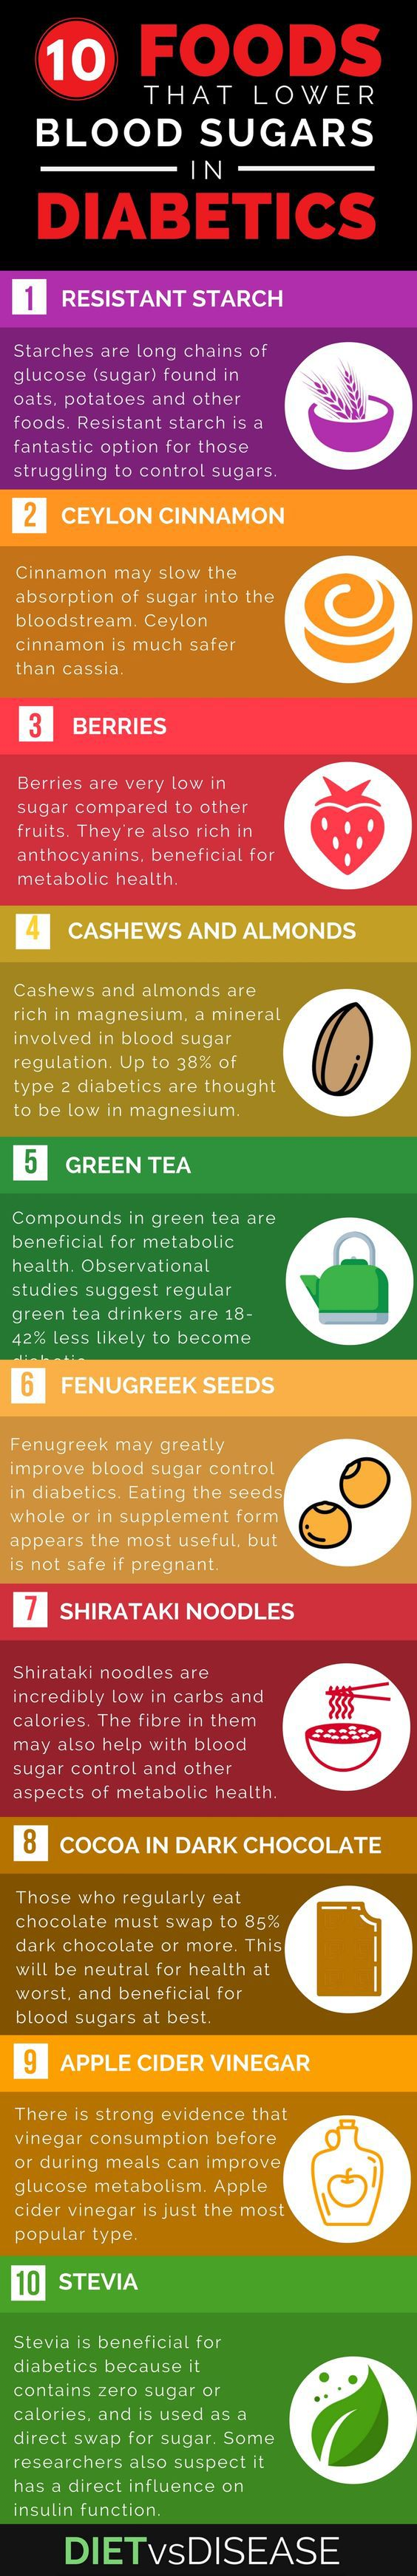 Maintaining low blood sugar levels can be difficult for diabetic patients. While a low carb diet appears to be useful on the whole, there are also many foods shown to help. Either by lowering blood sugars andor improving insulin sensitivity. For more information on each food